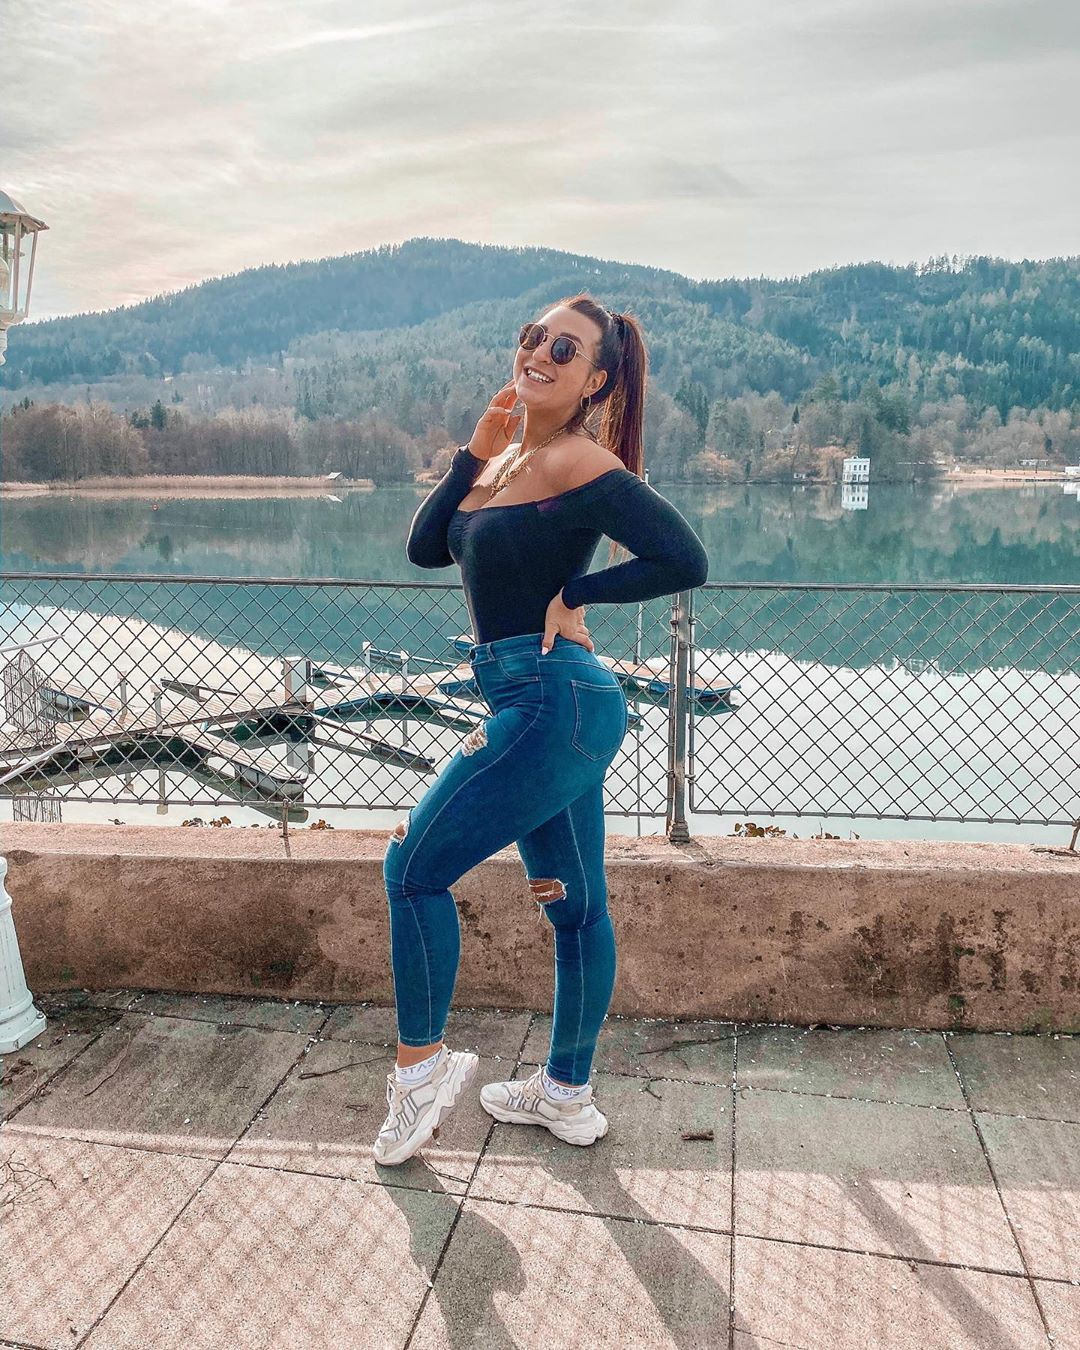 electric blue outfit instagram with sportswear, leggings, photoshoot ideas